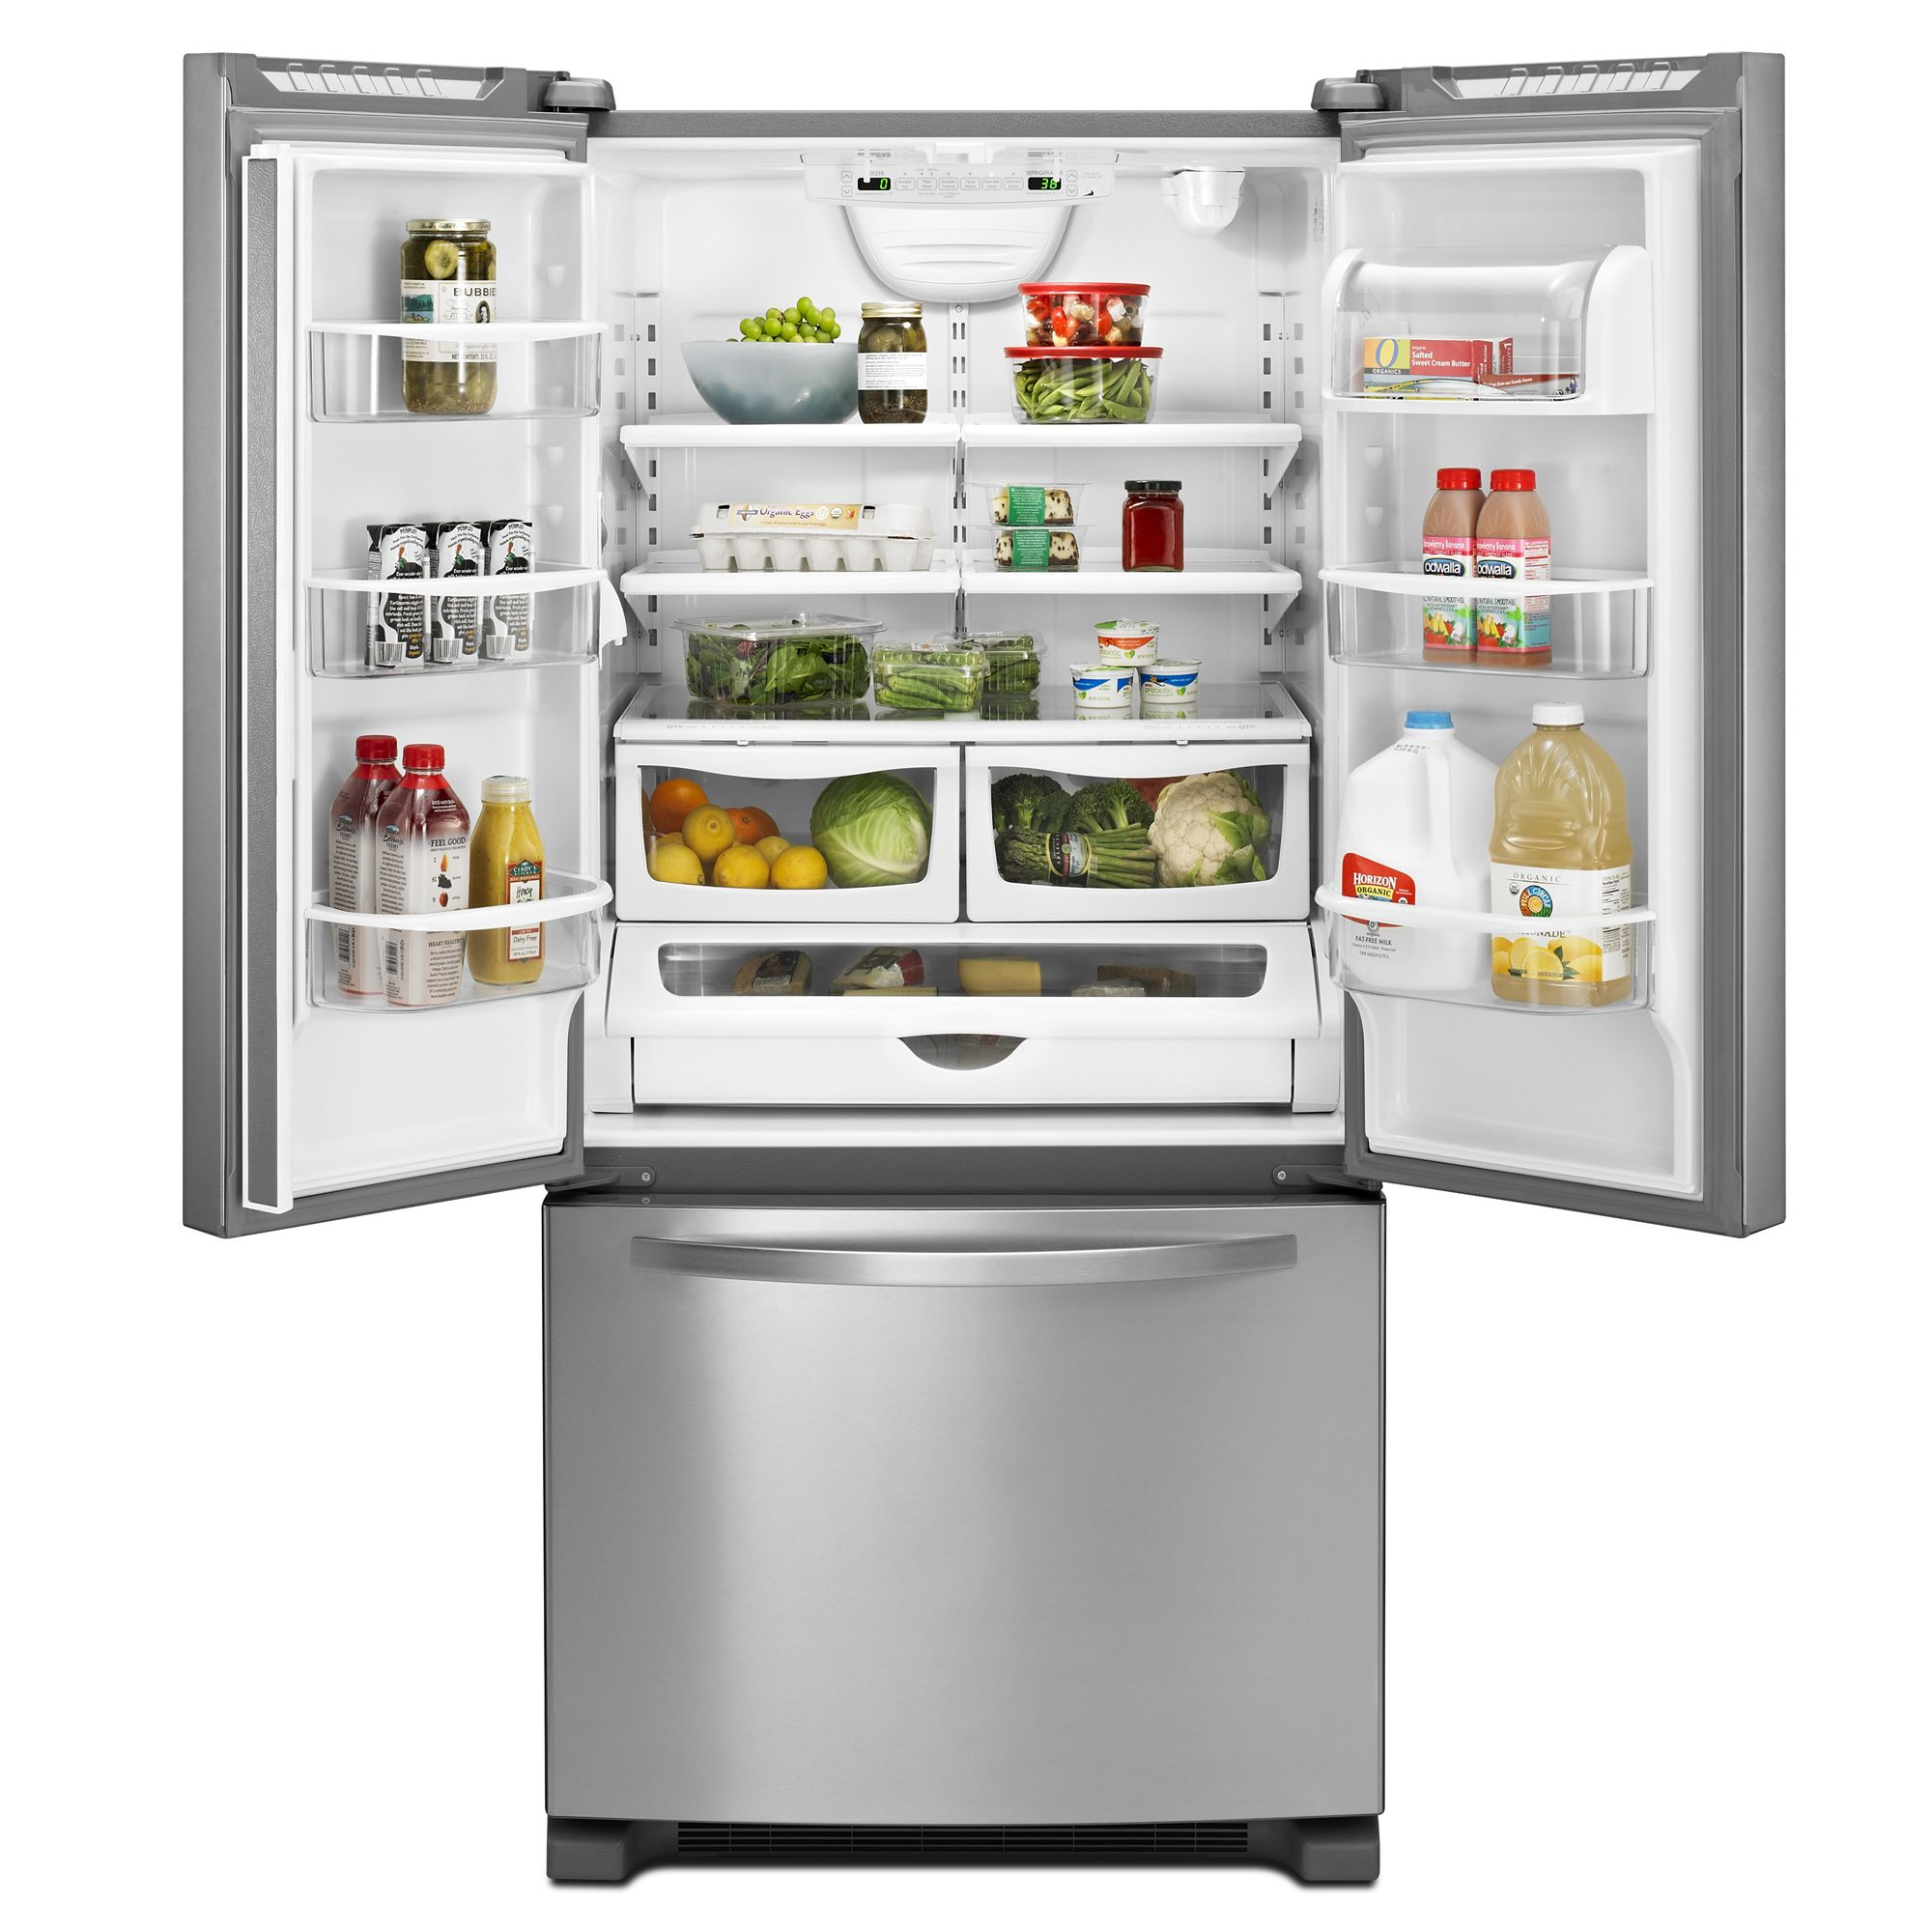 Kenmore 22 cu. ft. French-Door Bottom-Freezer Refrigerator w/Internal Dispenser - Stainless Steel